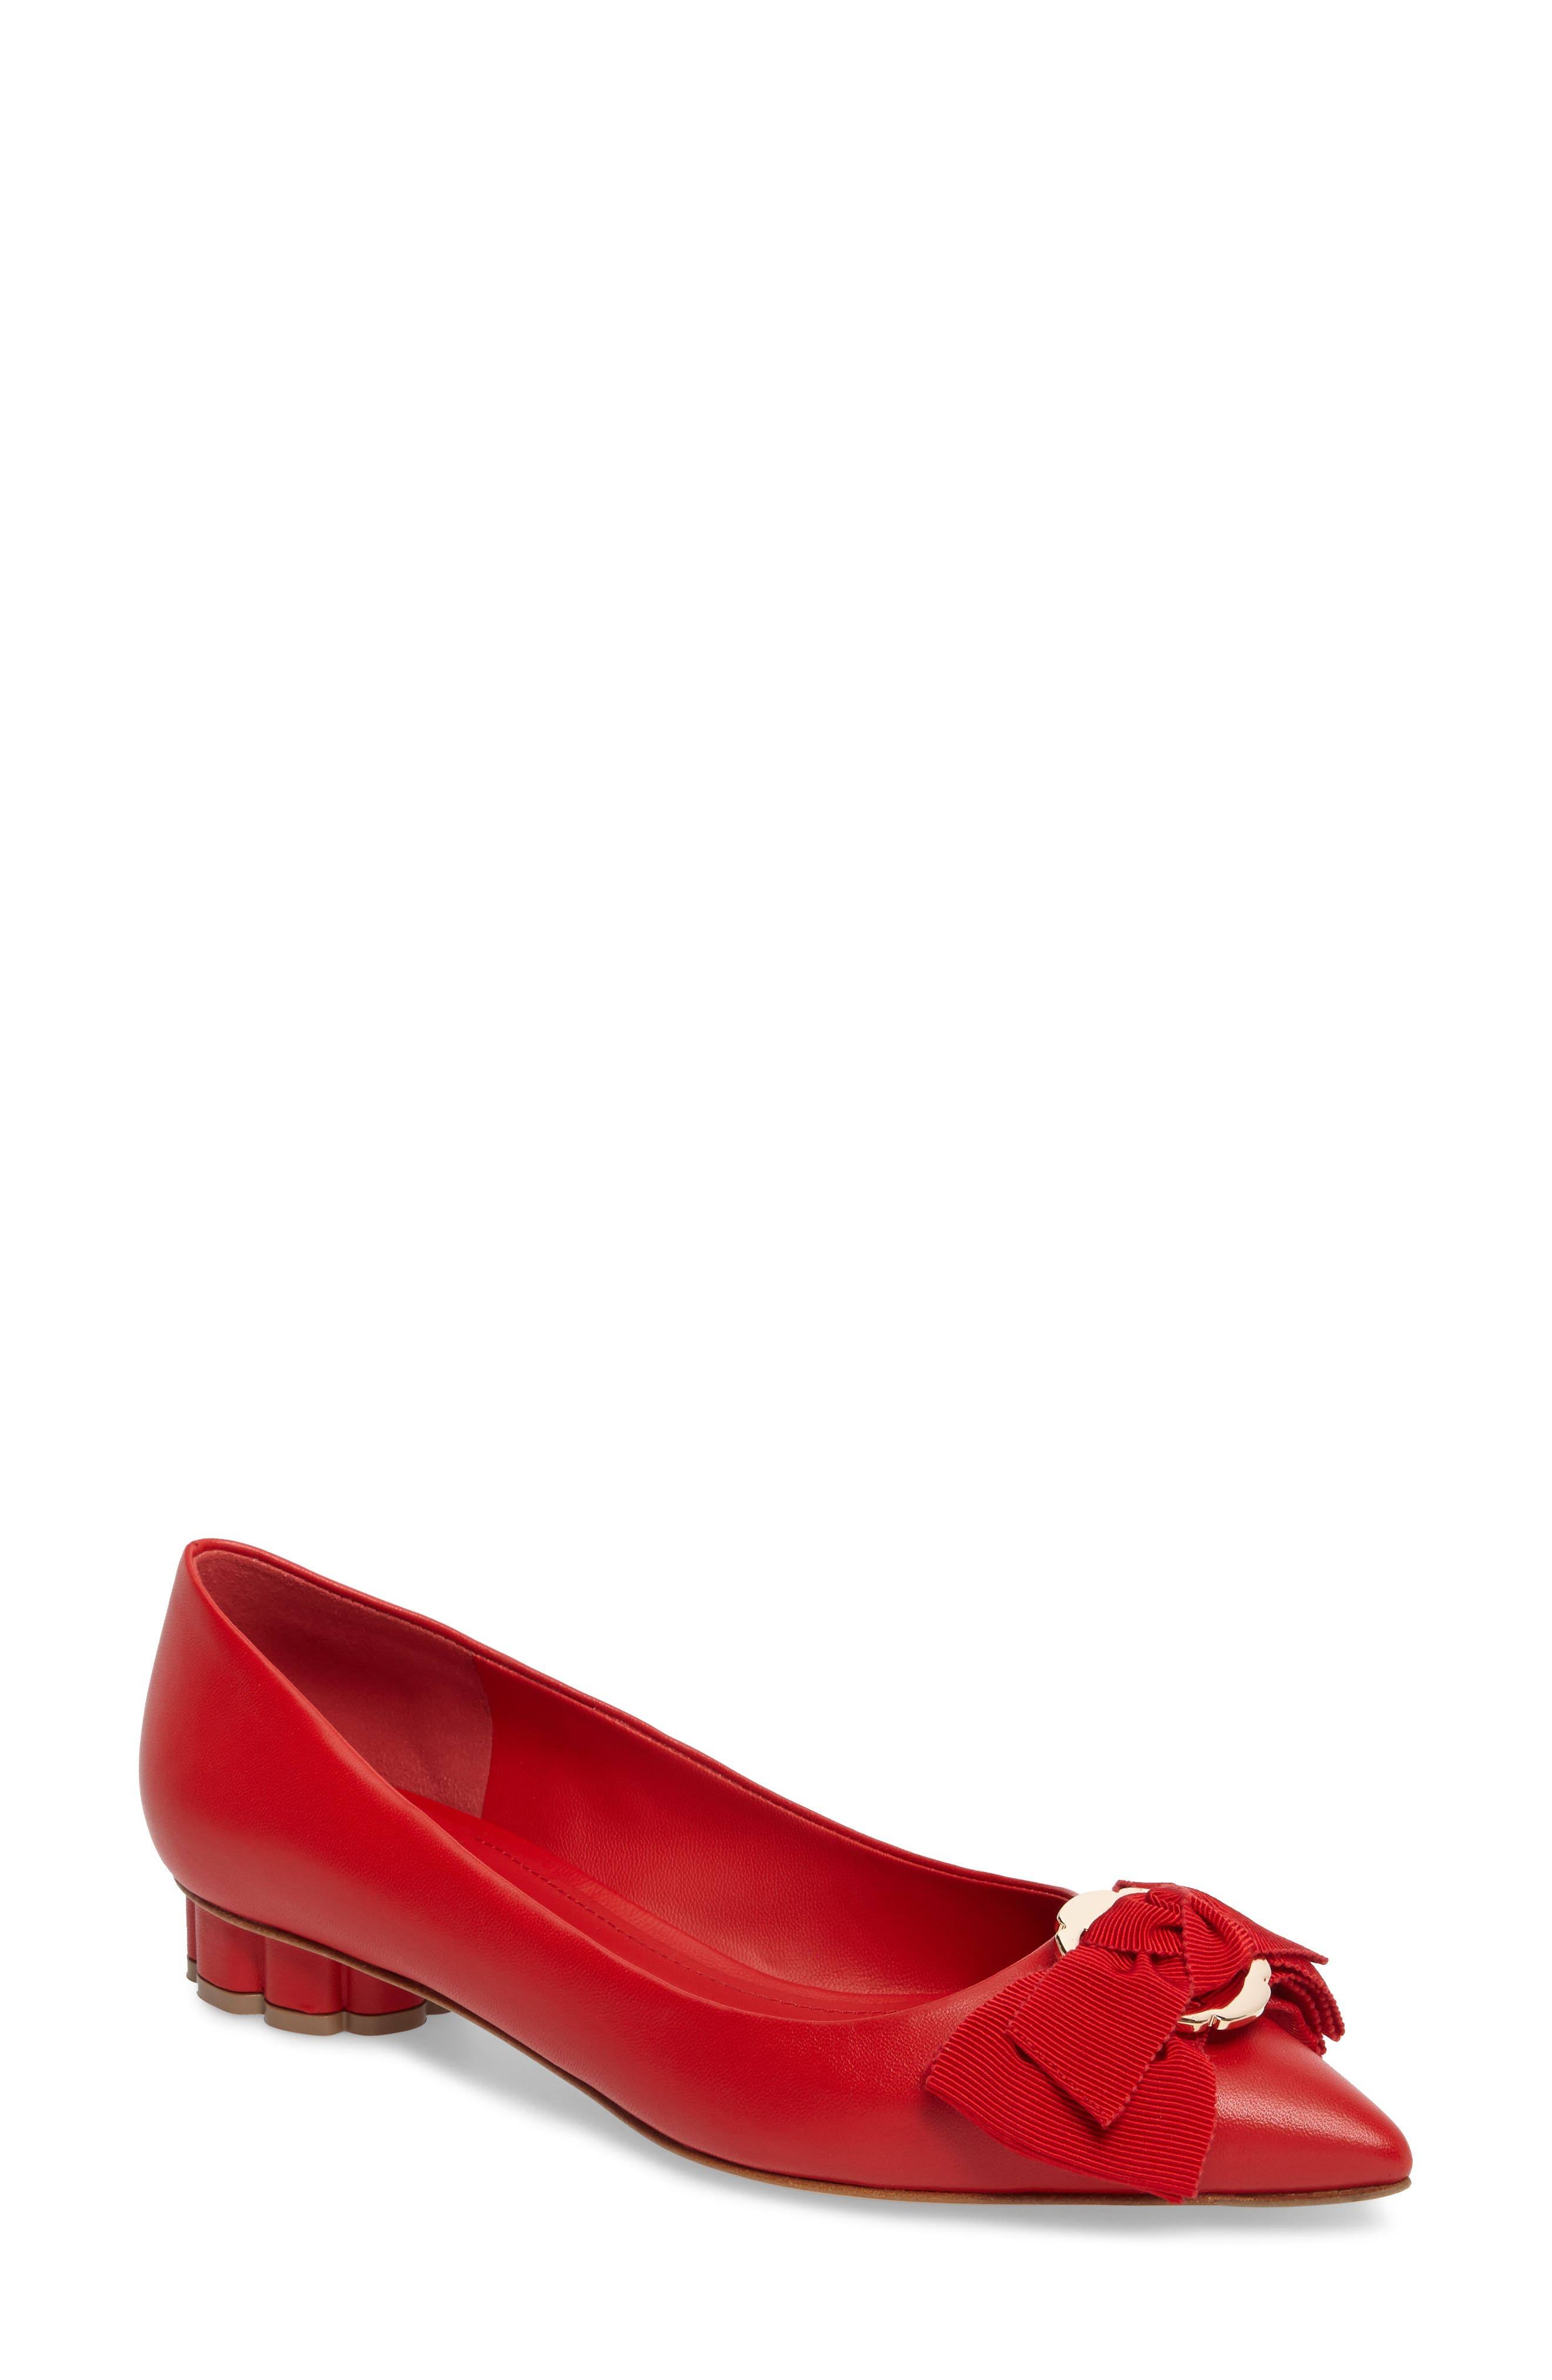 Salvatore Ferragamo Bow Pump (Women)